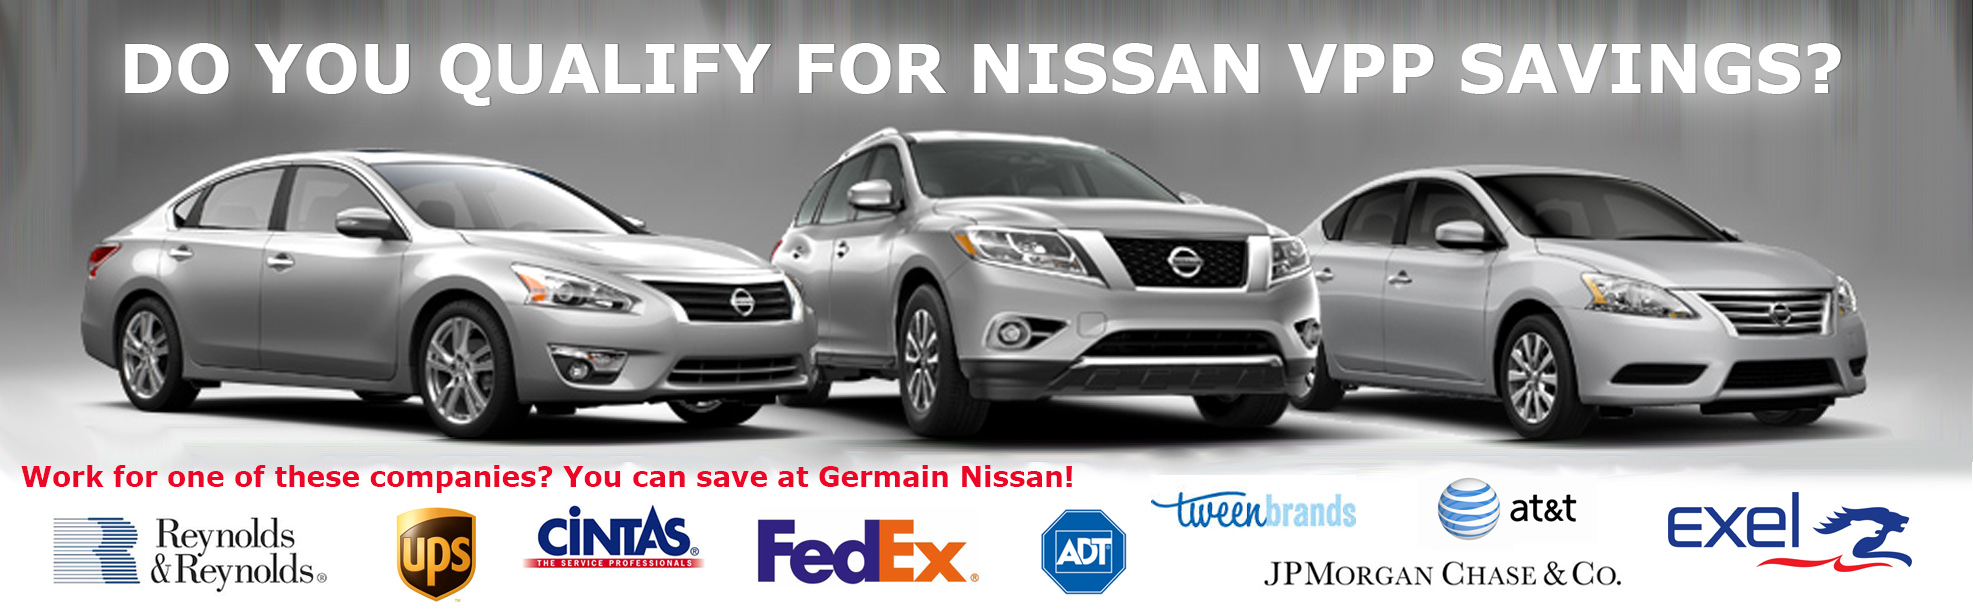 Columbus Ohio Nissan Dealership | Germain Nissan